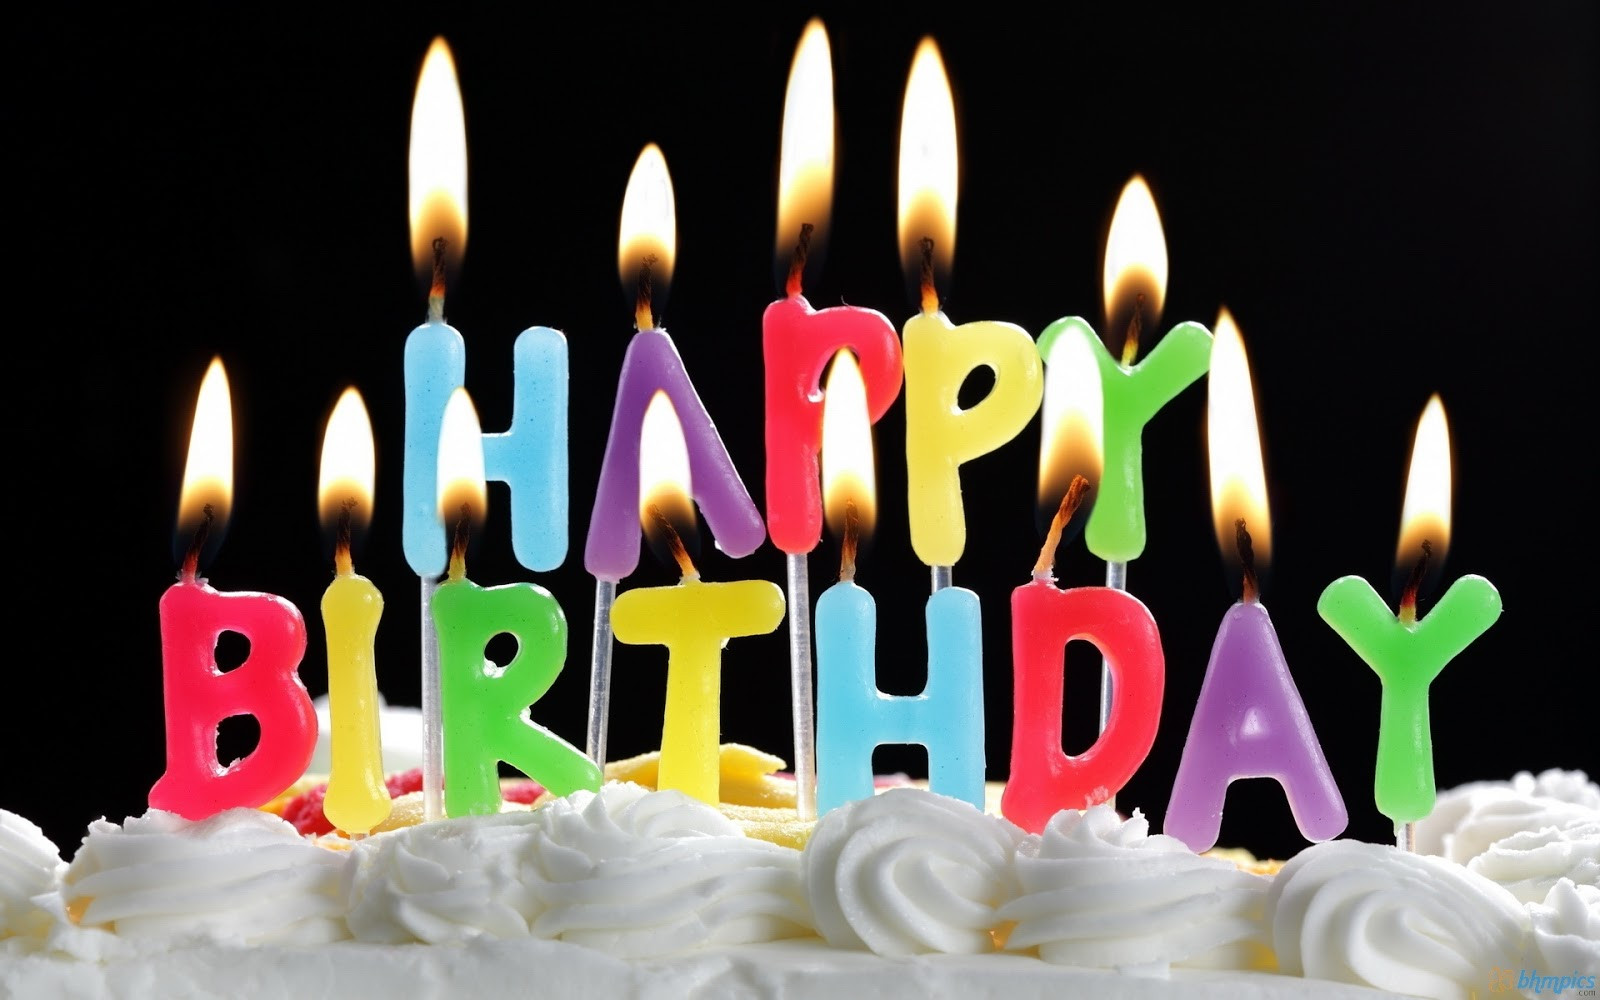 Best ideas about Birthday Cake Candles . Save or Pin Birthday Cakes With Candles Birthday Now.